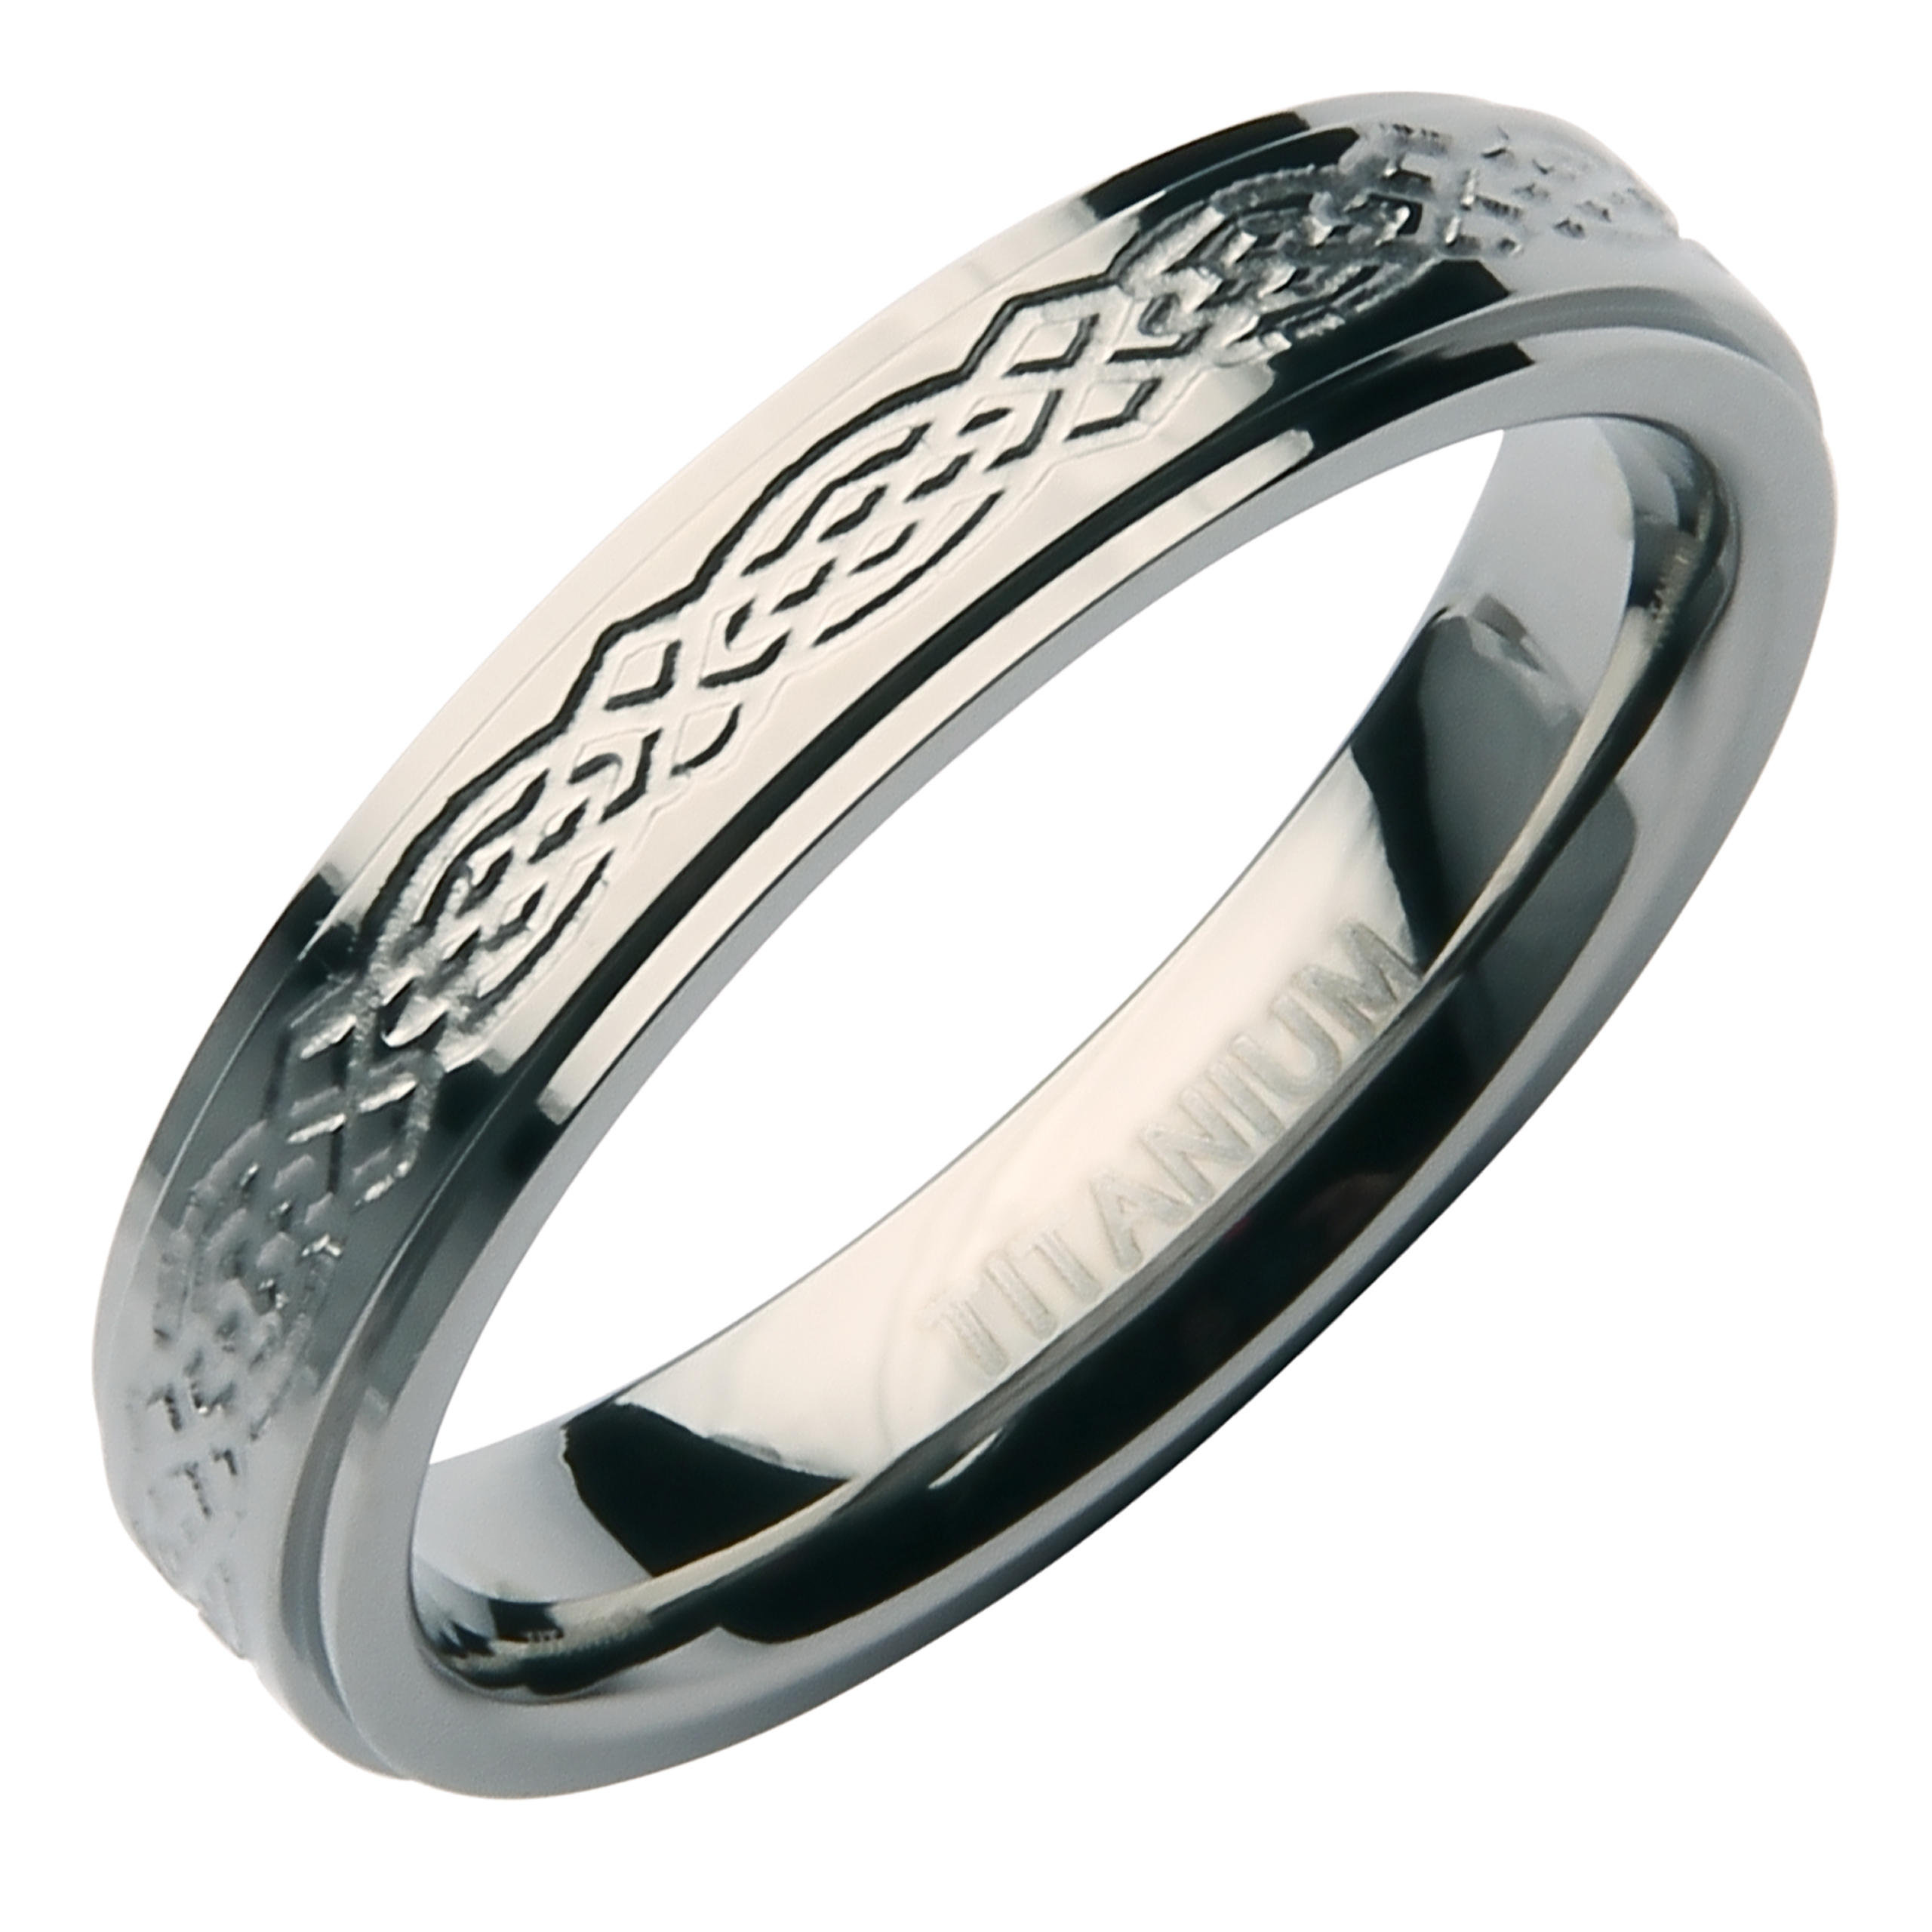 4mm Stunning Designed Titanium Wedding Band